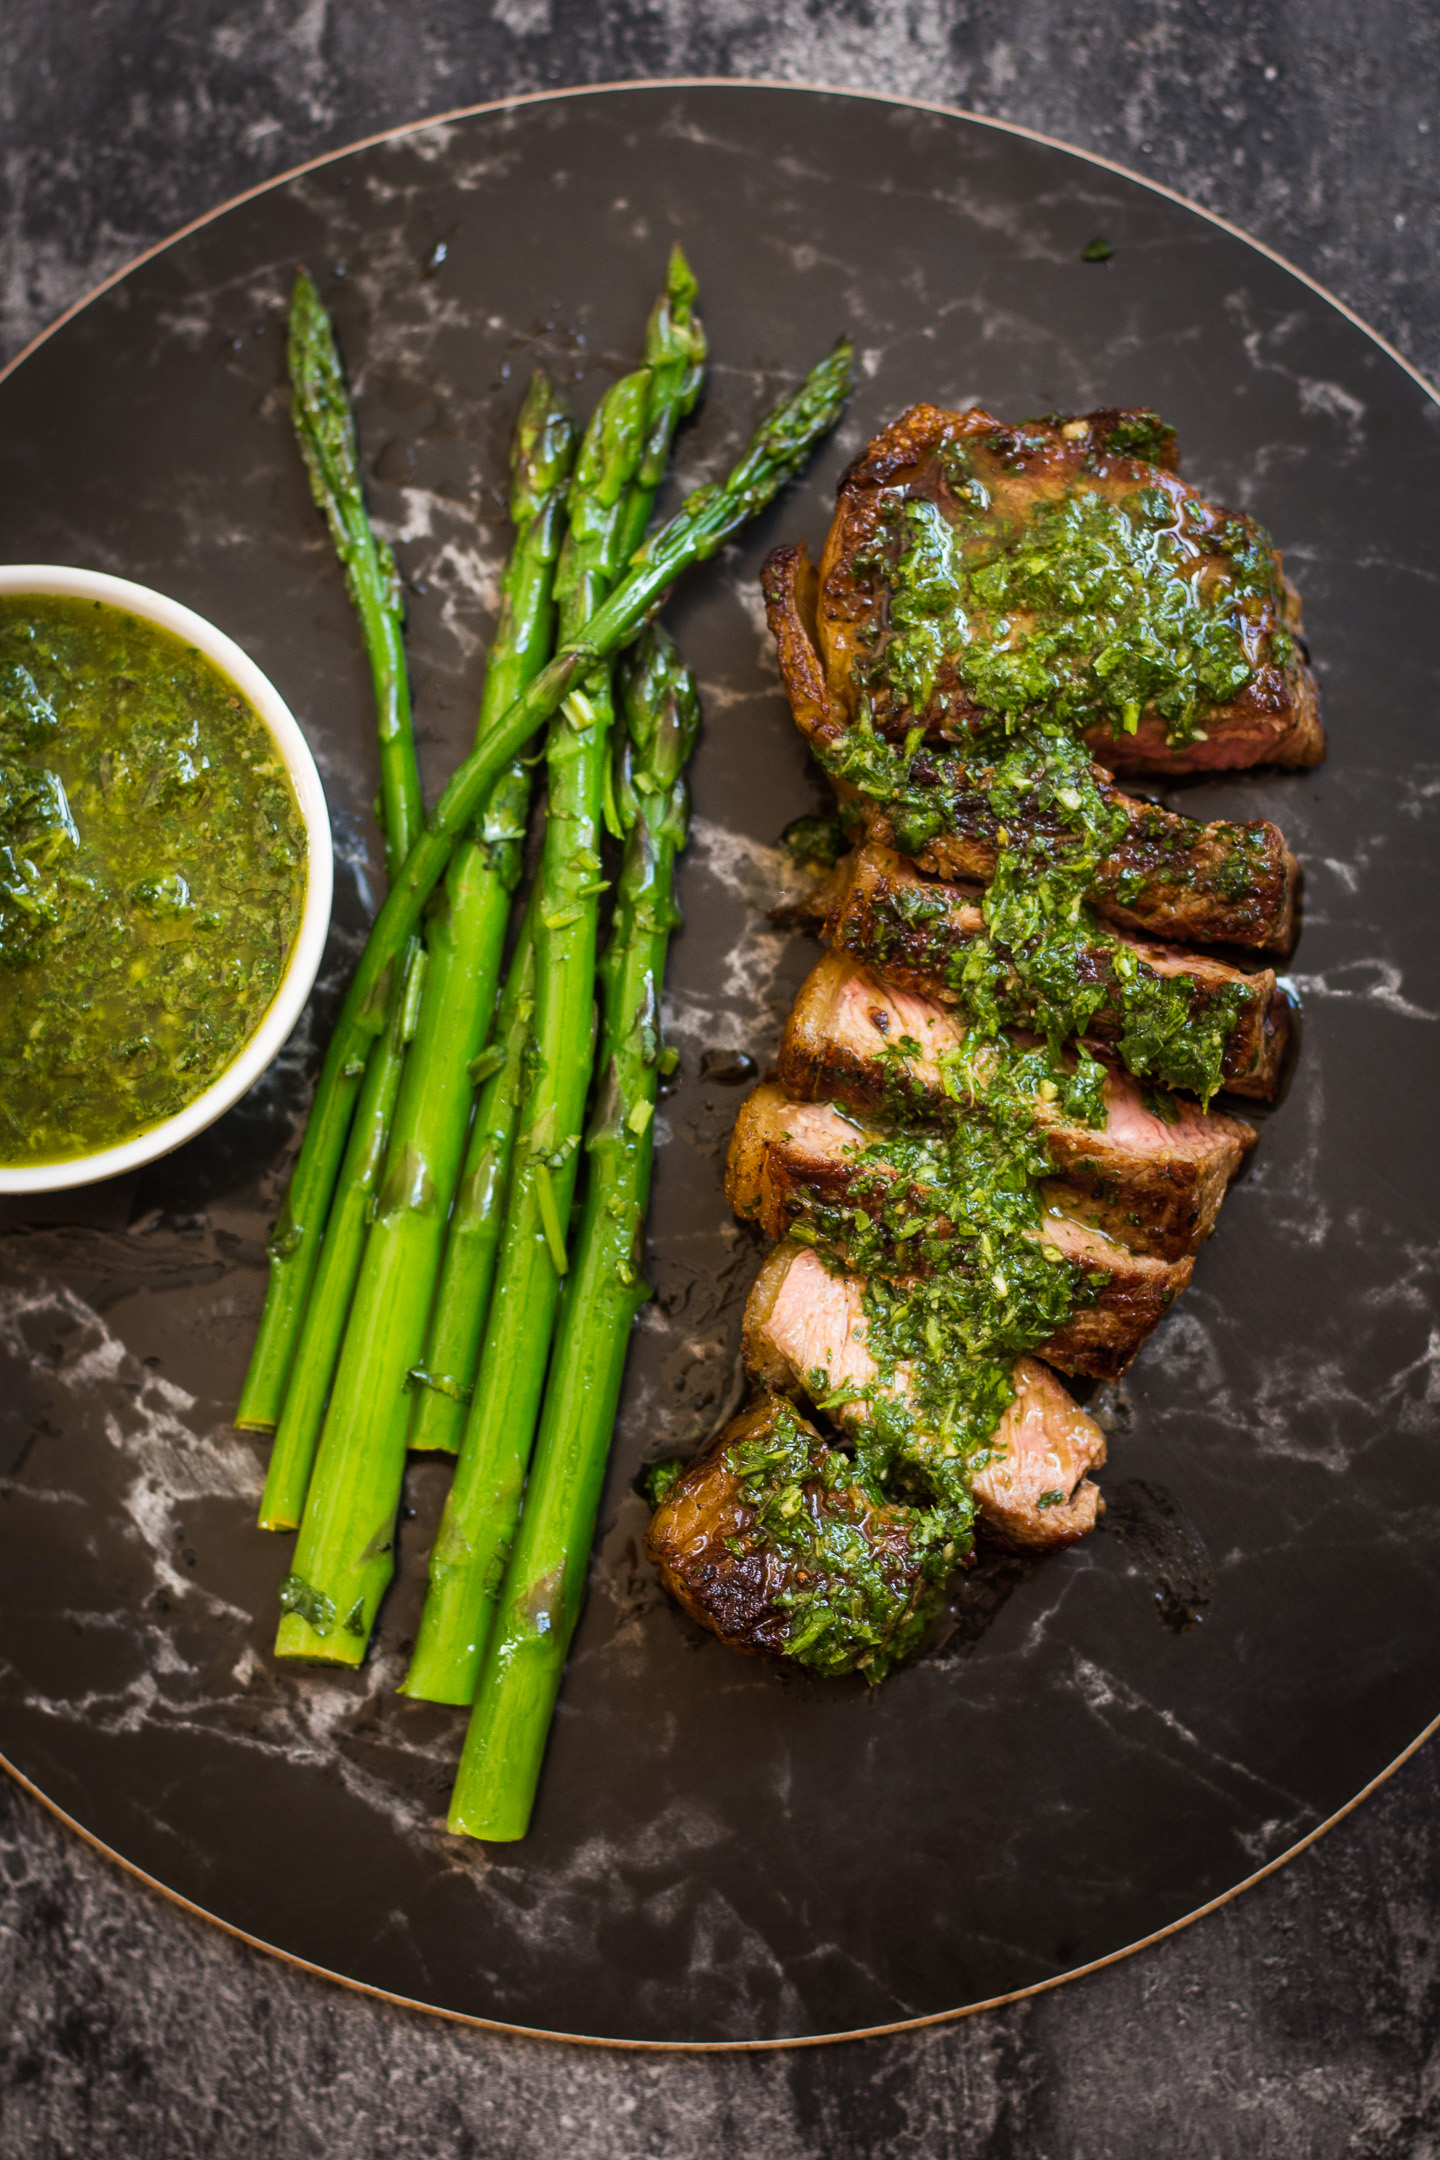 steak-with-chimichurri-sauce-recipe-2